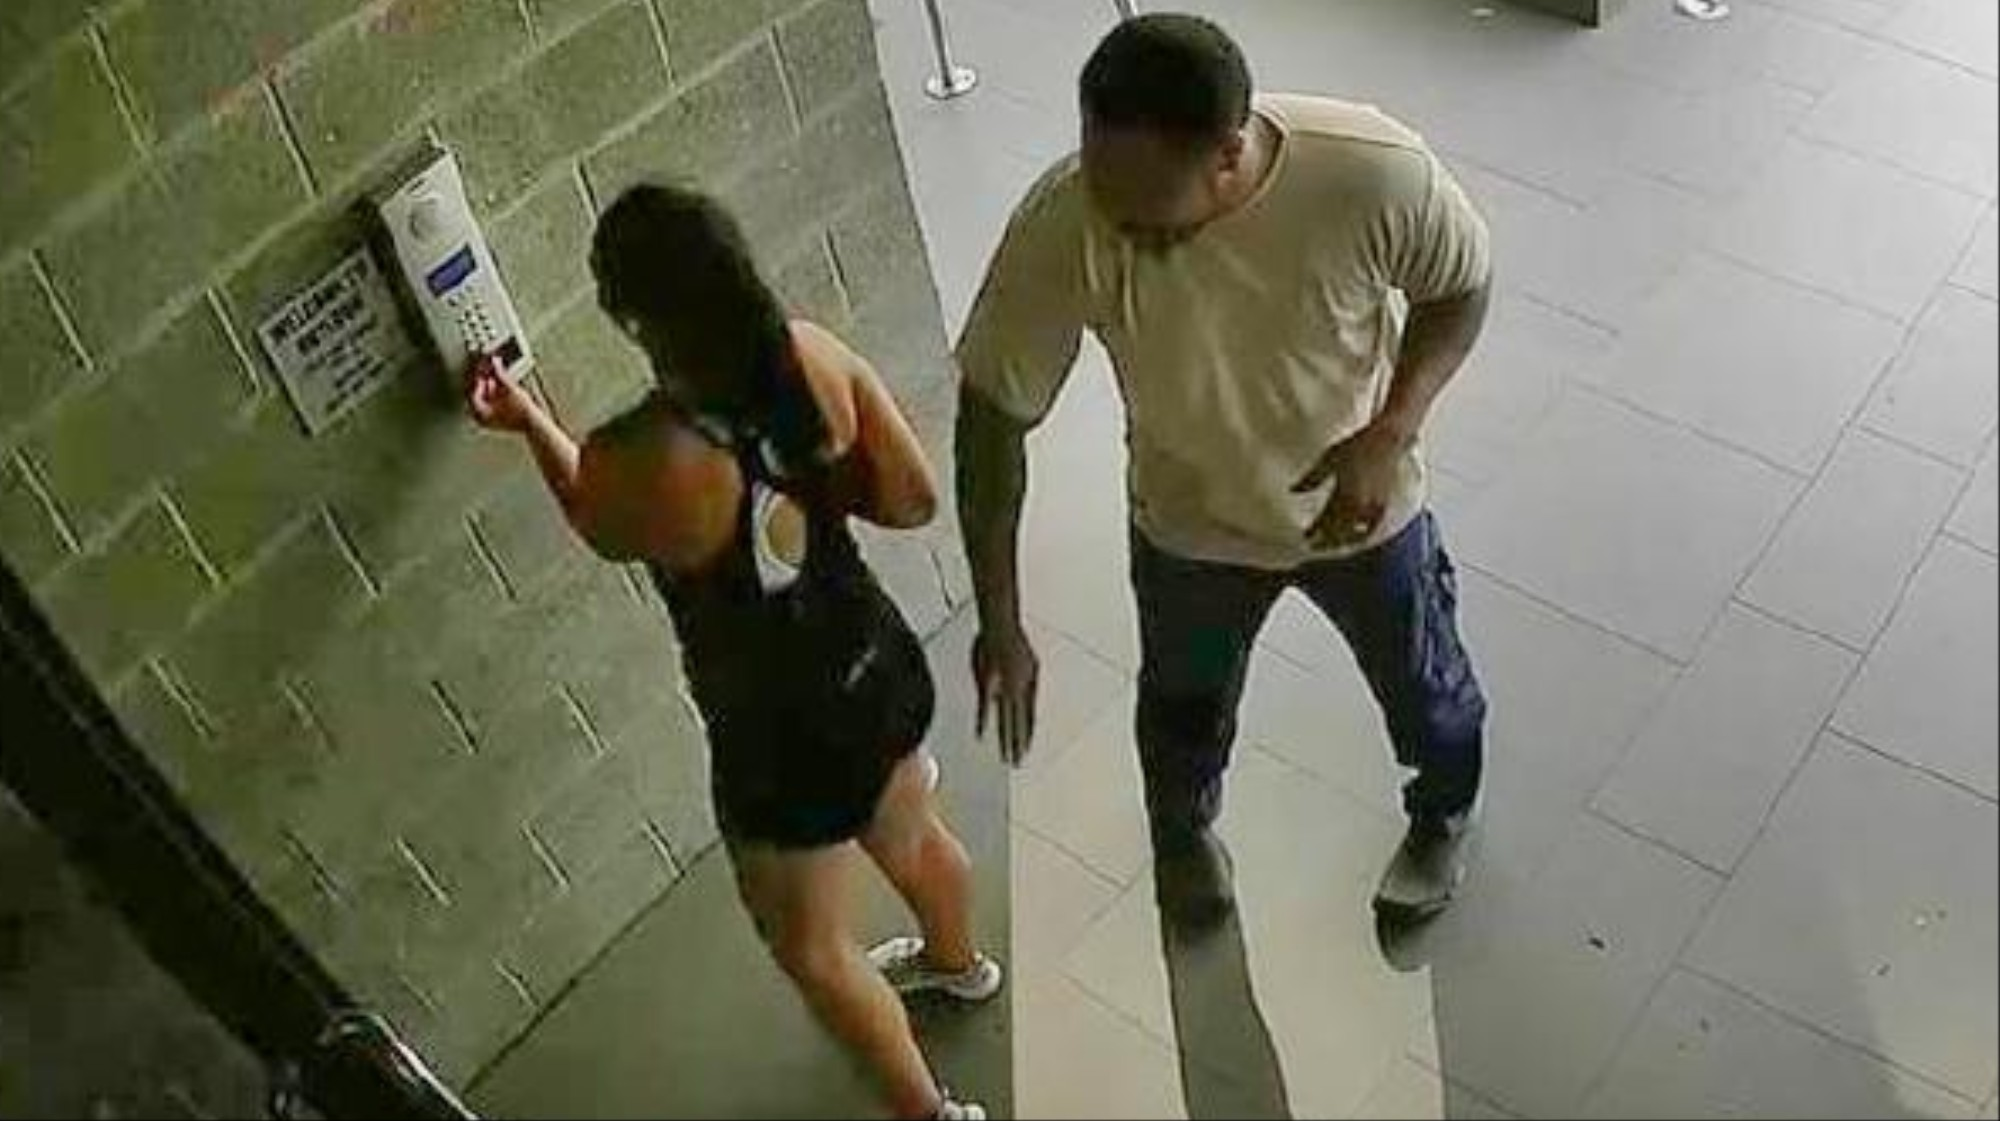 Ass Grope man caught groping woman on cctv says he 'just had to' do it